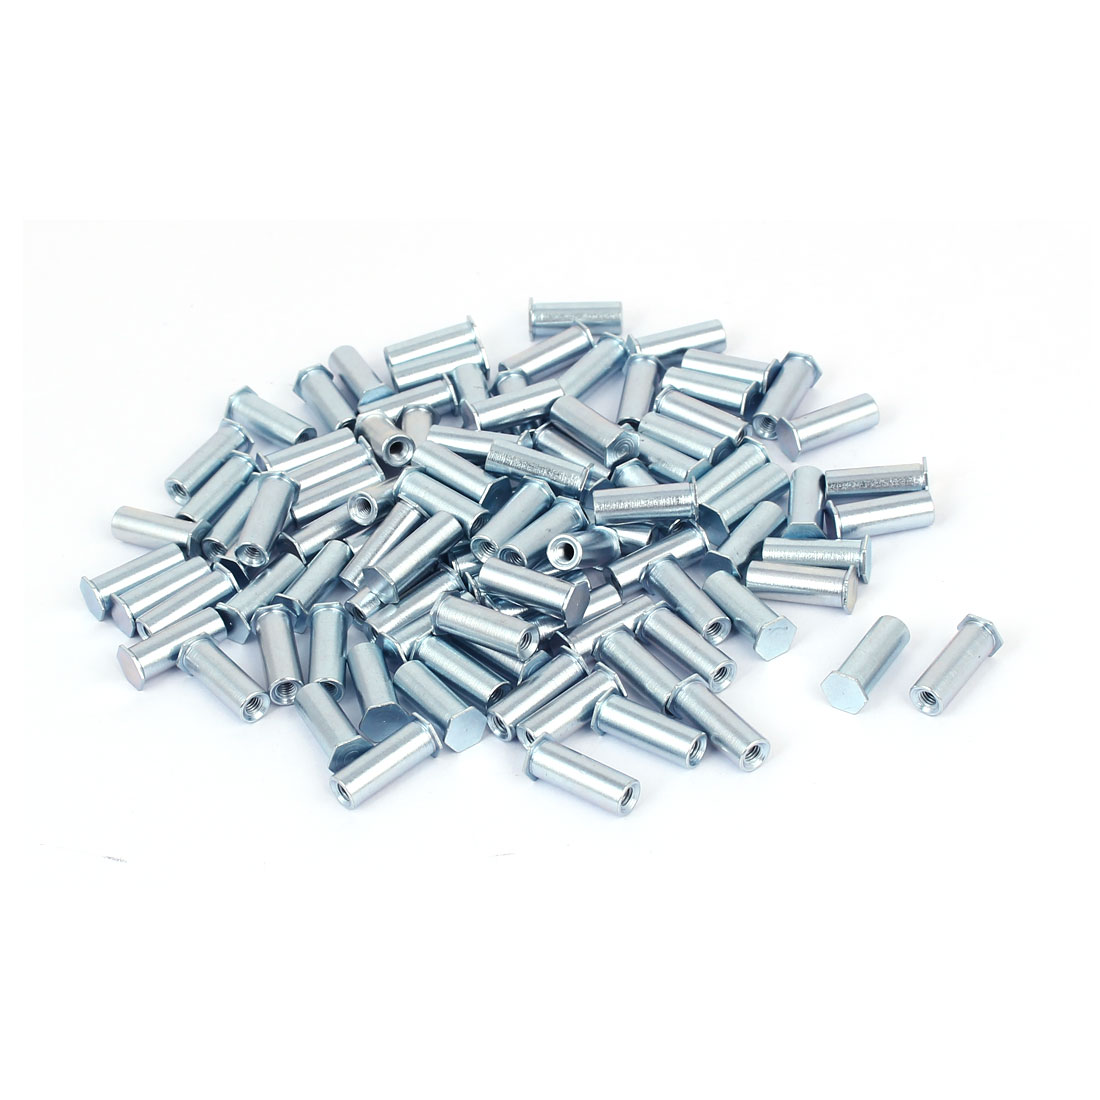 M3x15mm Hex Head Zinc Plated Carbon Steel Blind Self Clinching Standoff 100pcs